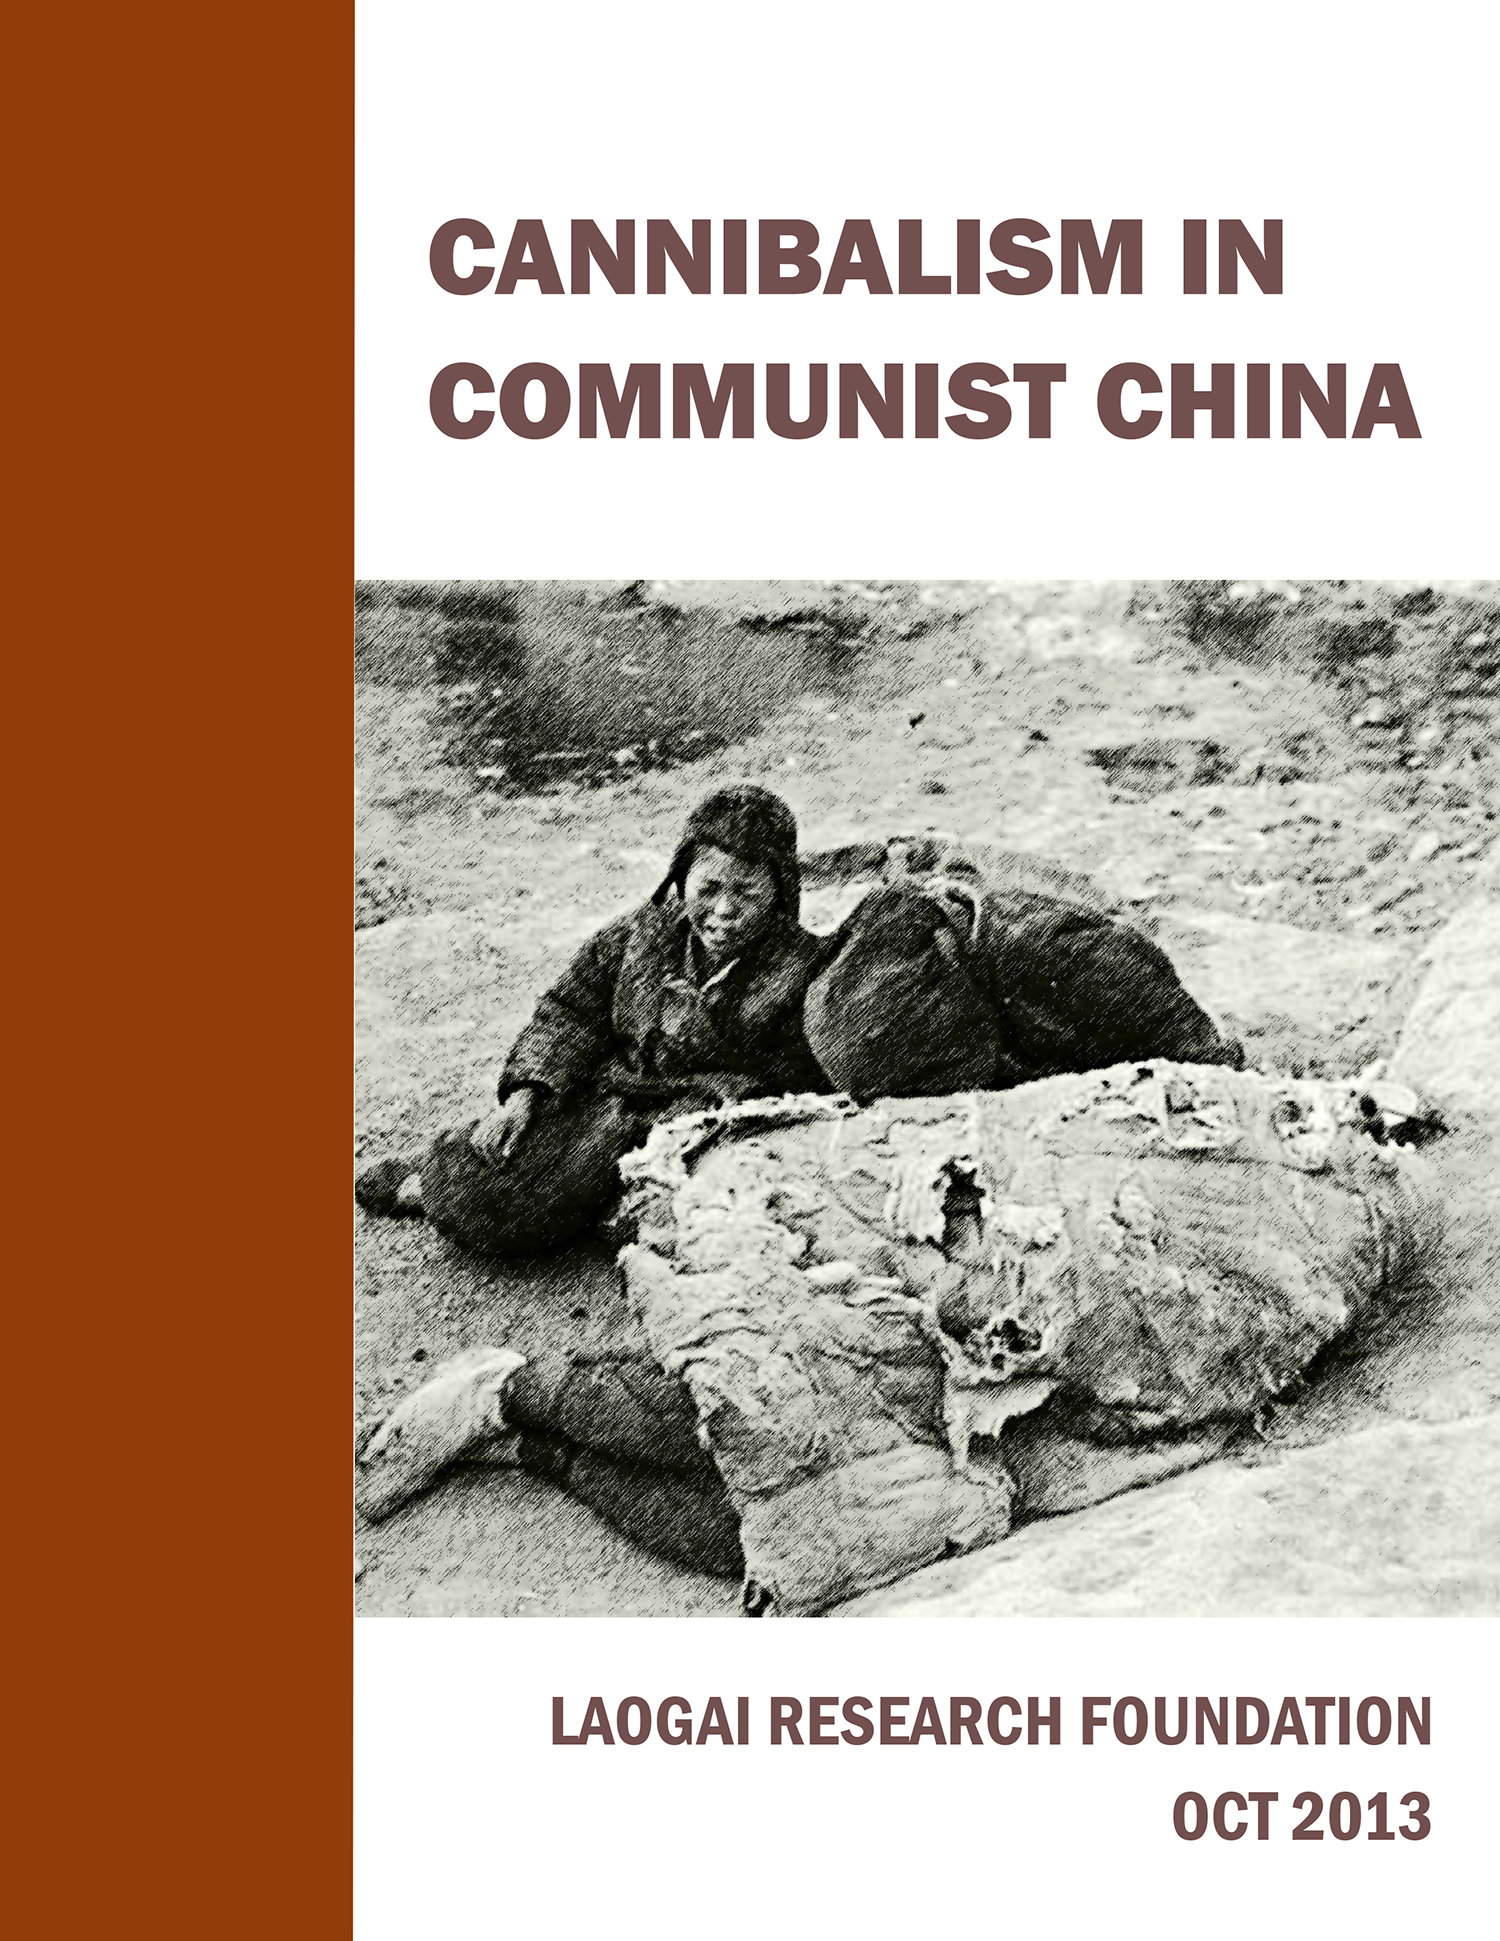 cannibalism Cannibalism in Communist China